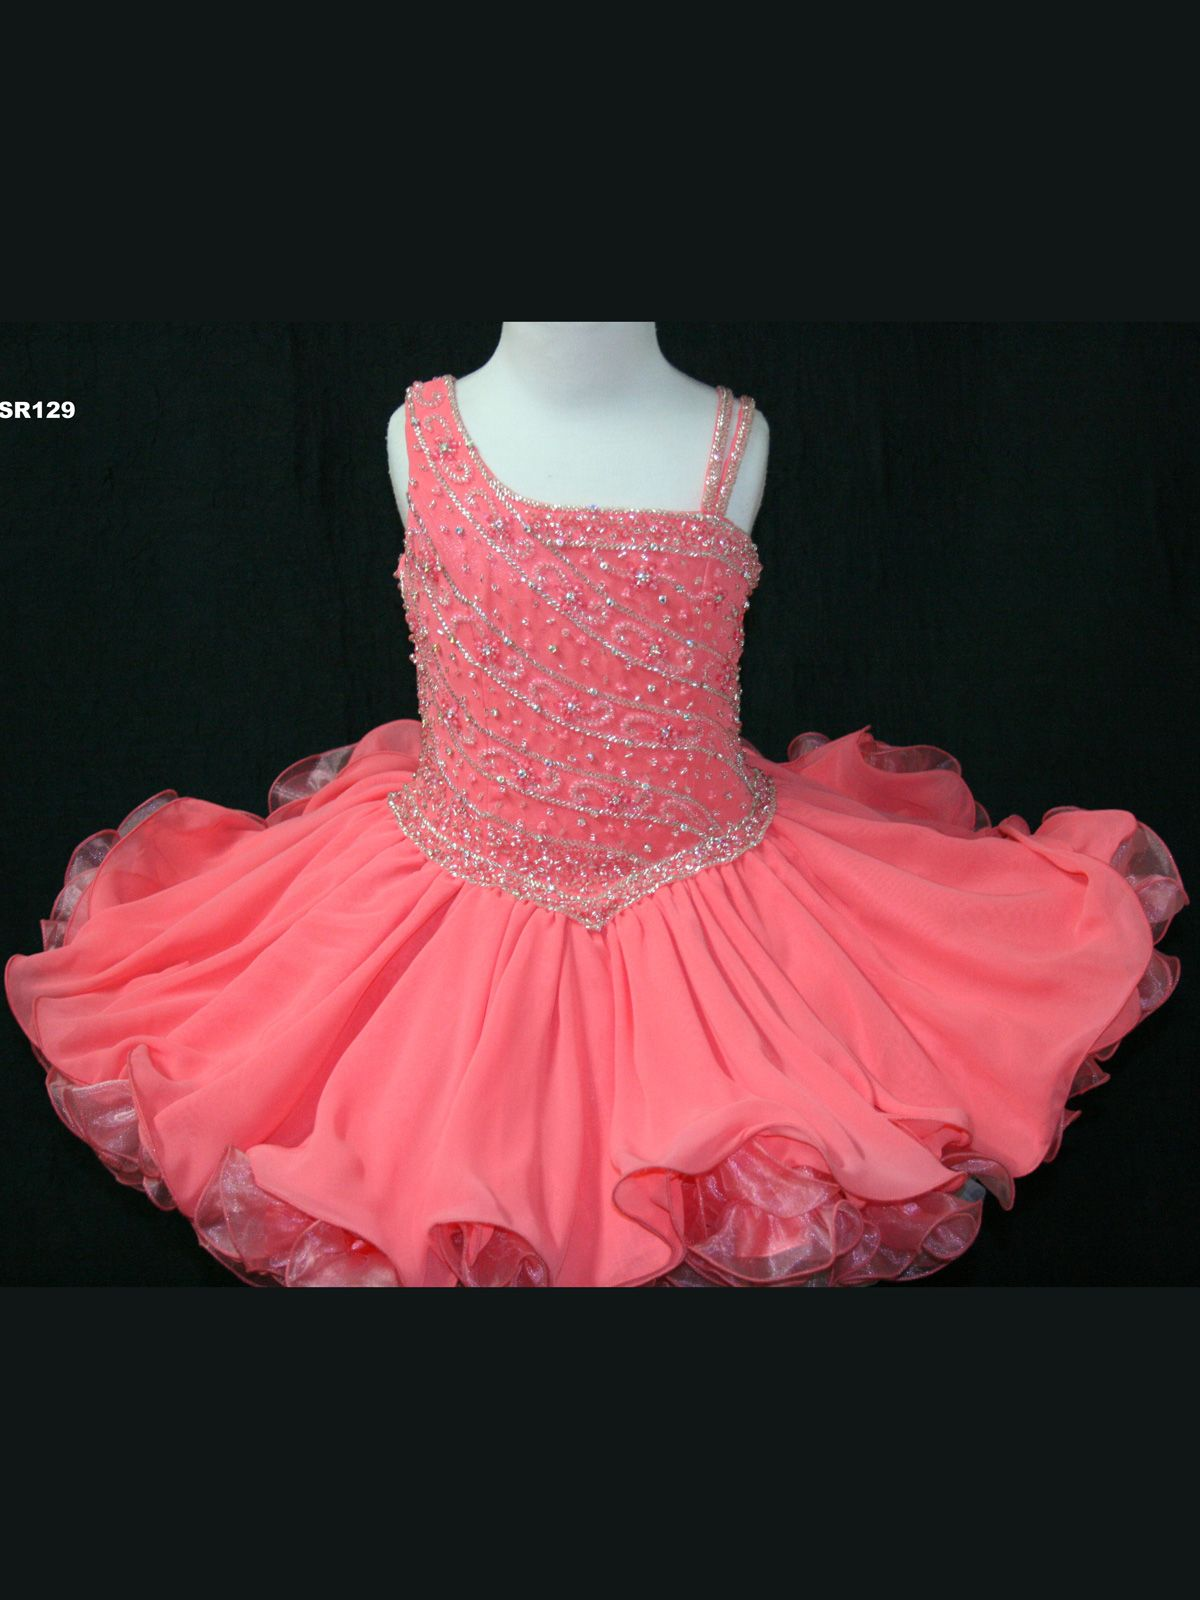 10 Best images about Pageant dresses on Pinterest  Girls pageant ...